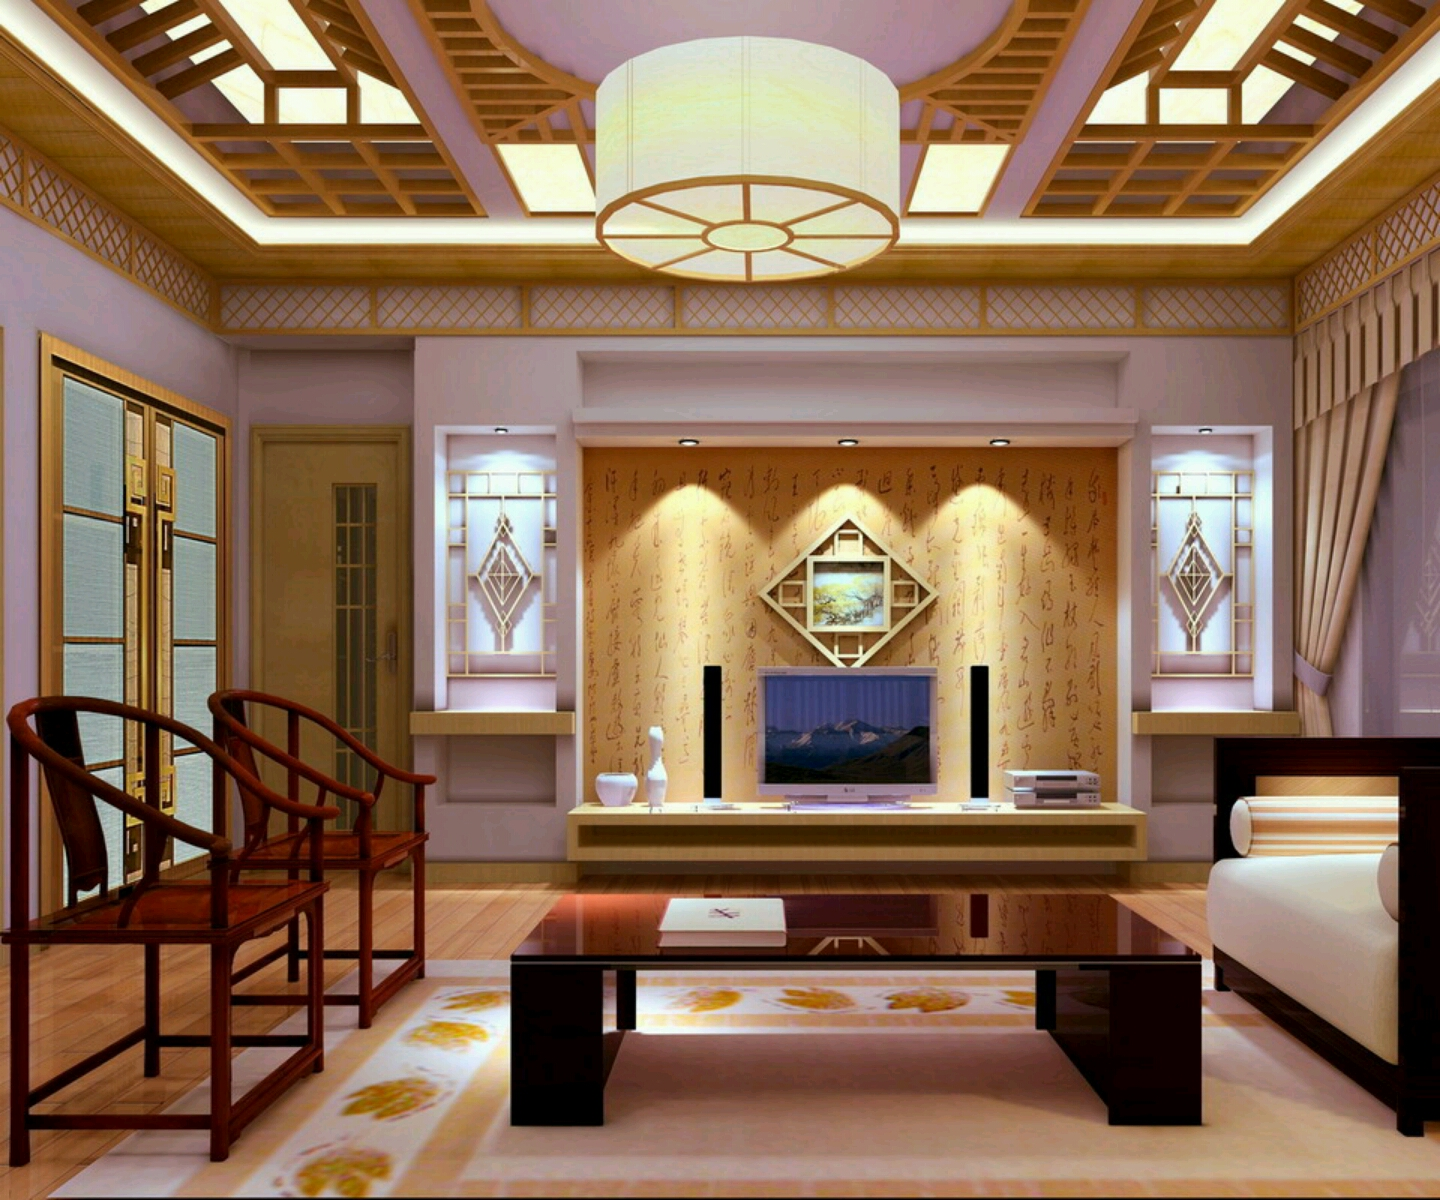 New home designs latest homes interior designs studyrooms for New room interior design